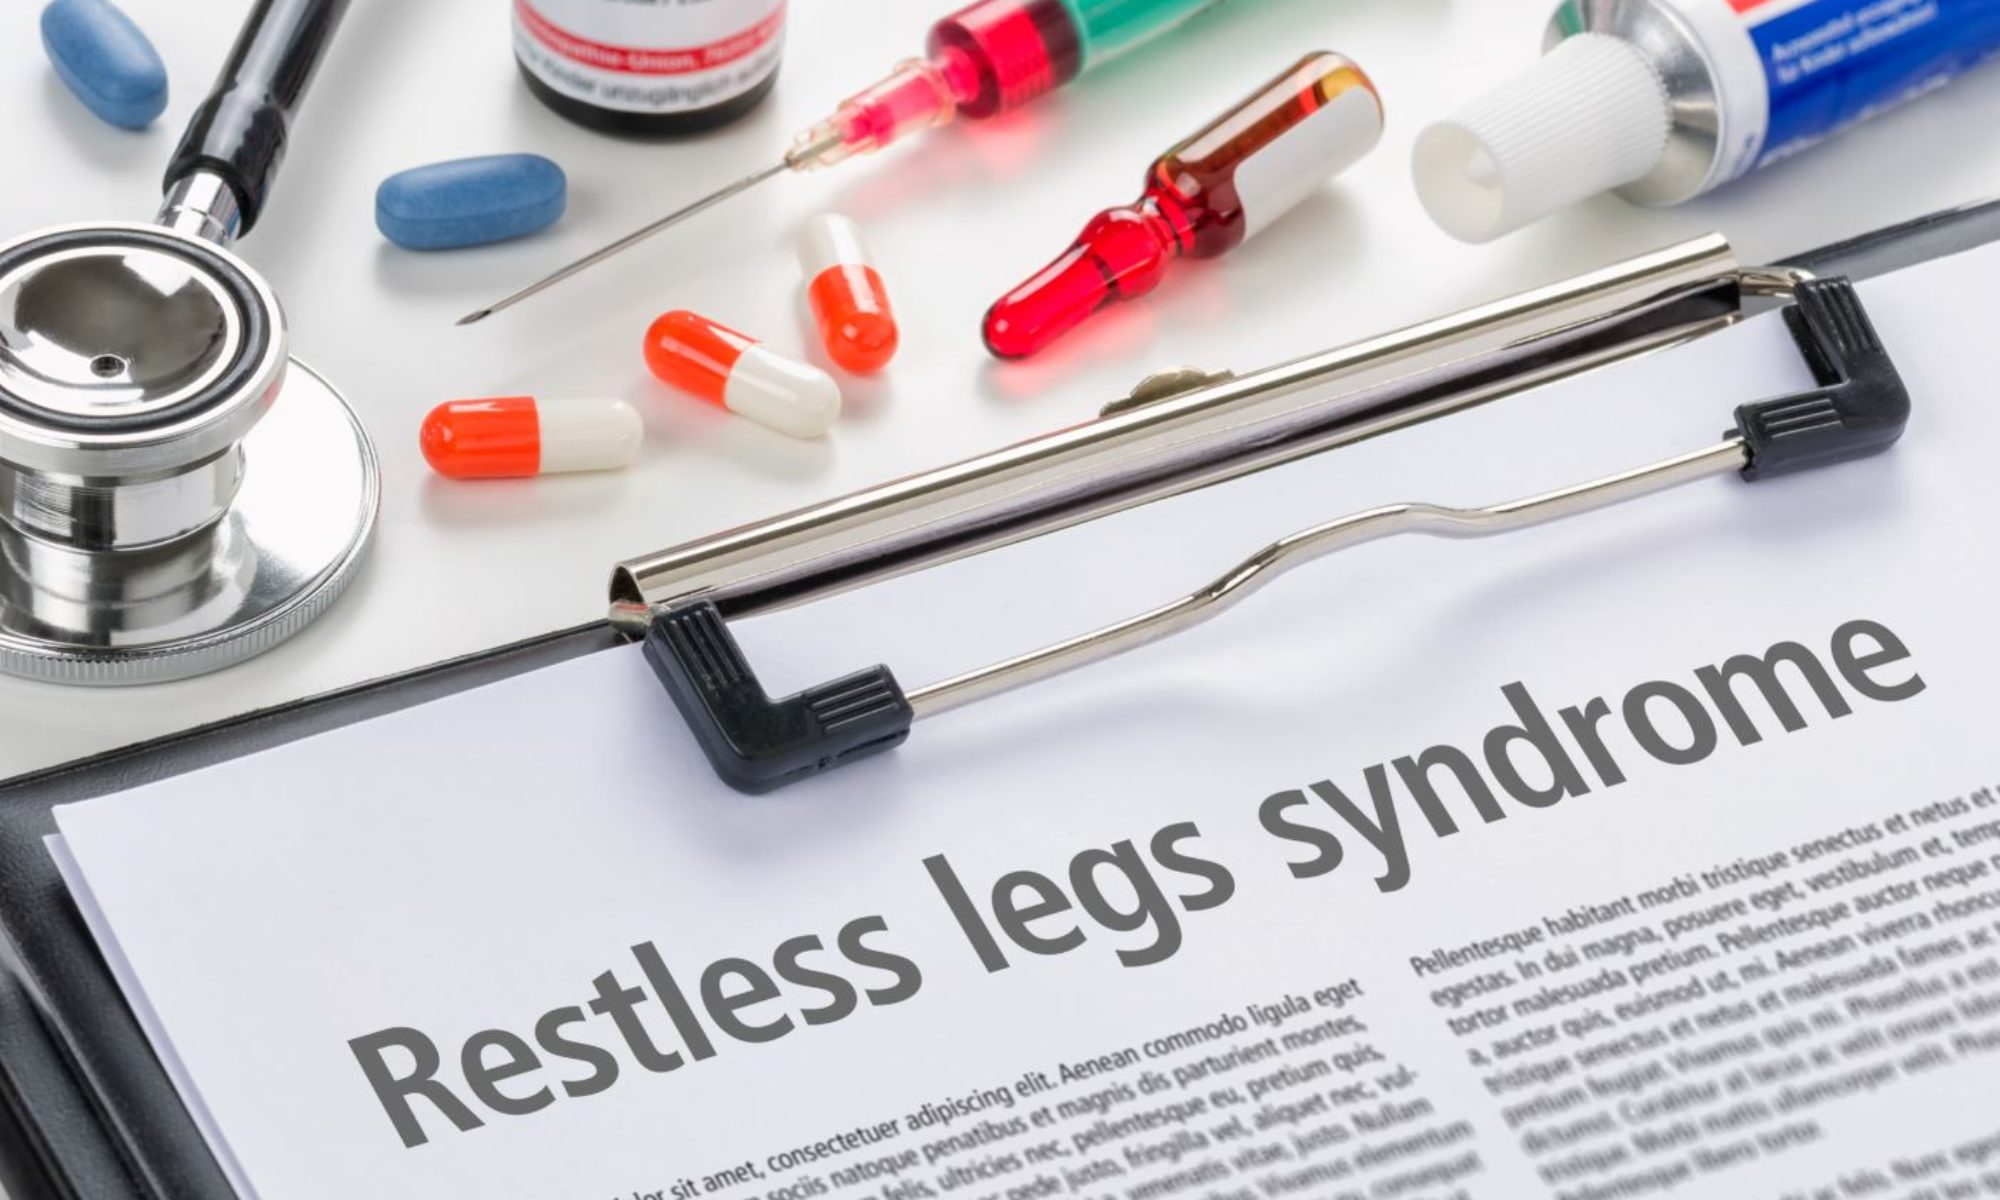 My Life With Restless Legs Syndrome